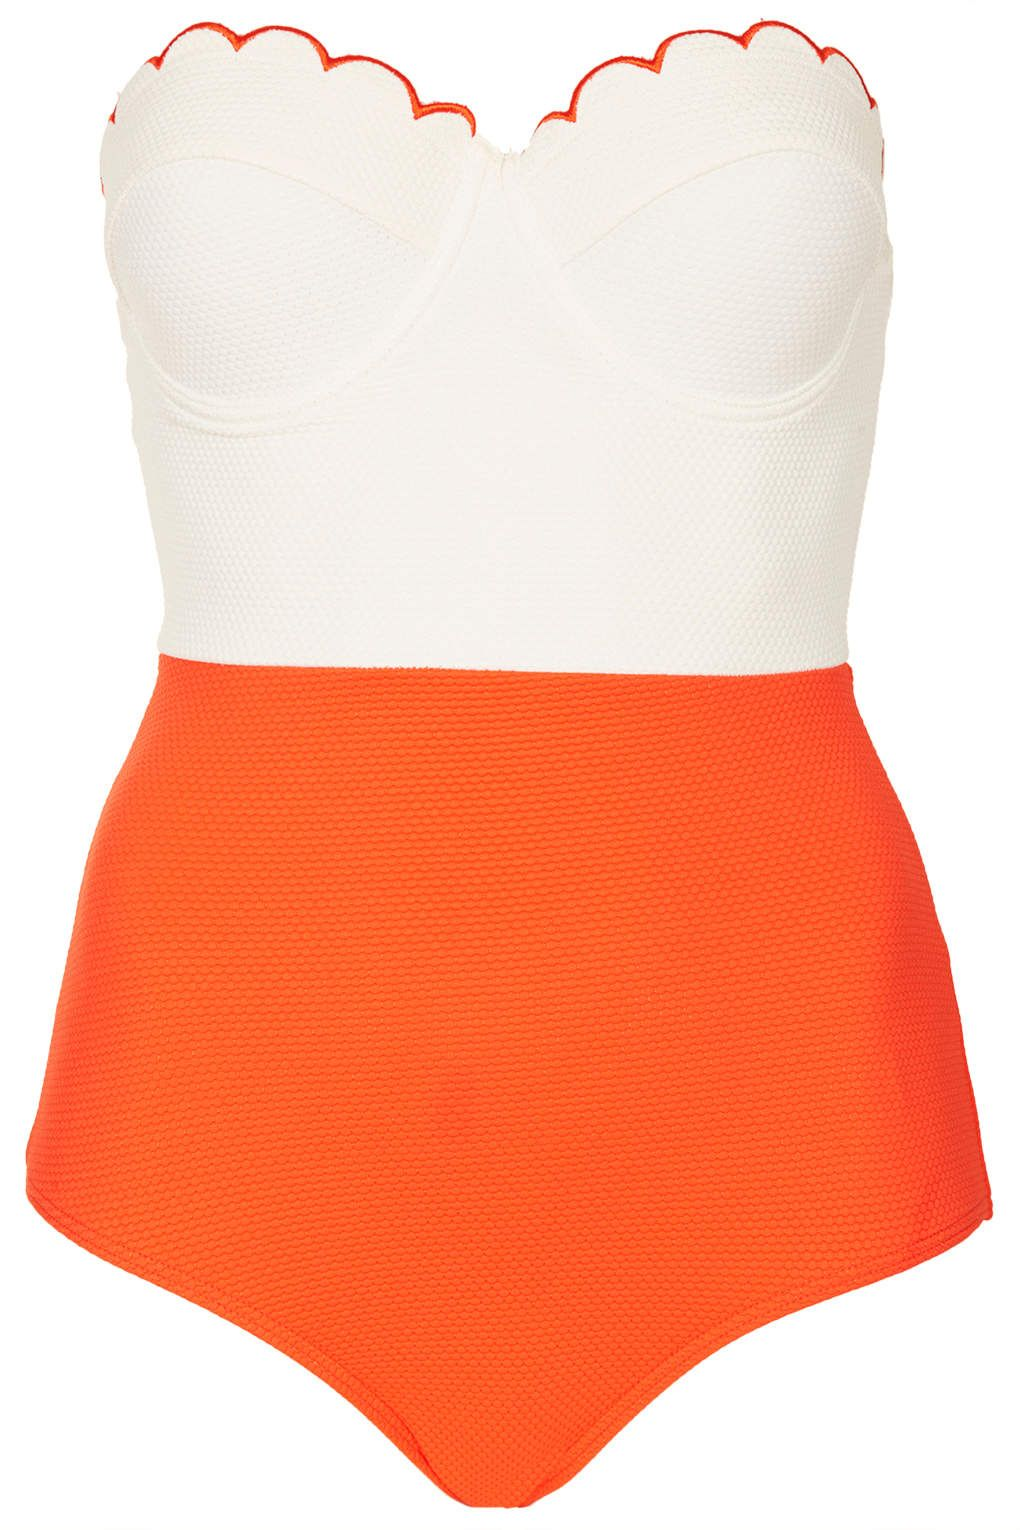 c84dbab939d23 Tomato and Cream Scallop Swimsuit - Swimsuits - Swimwear - Clothing -  Topshop USA